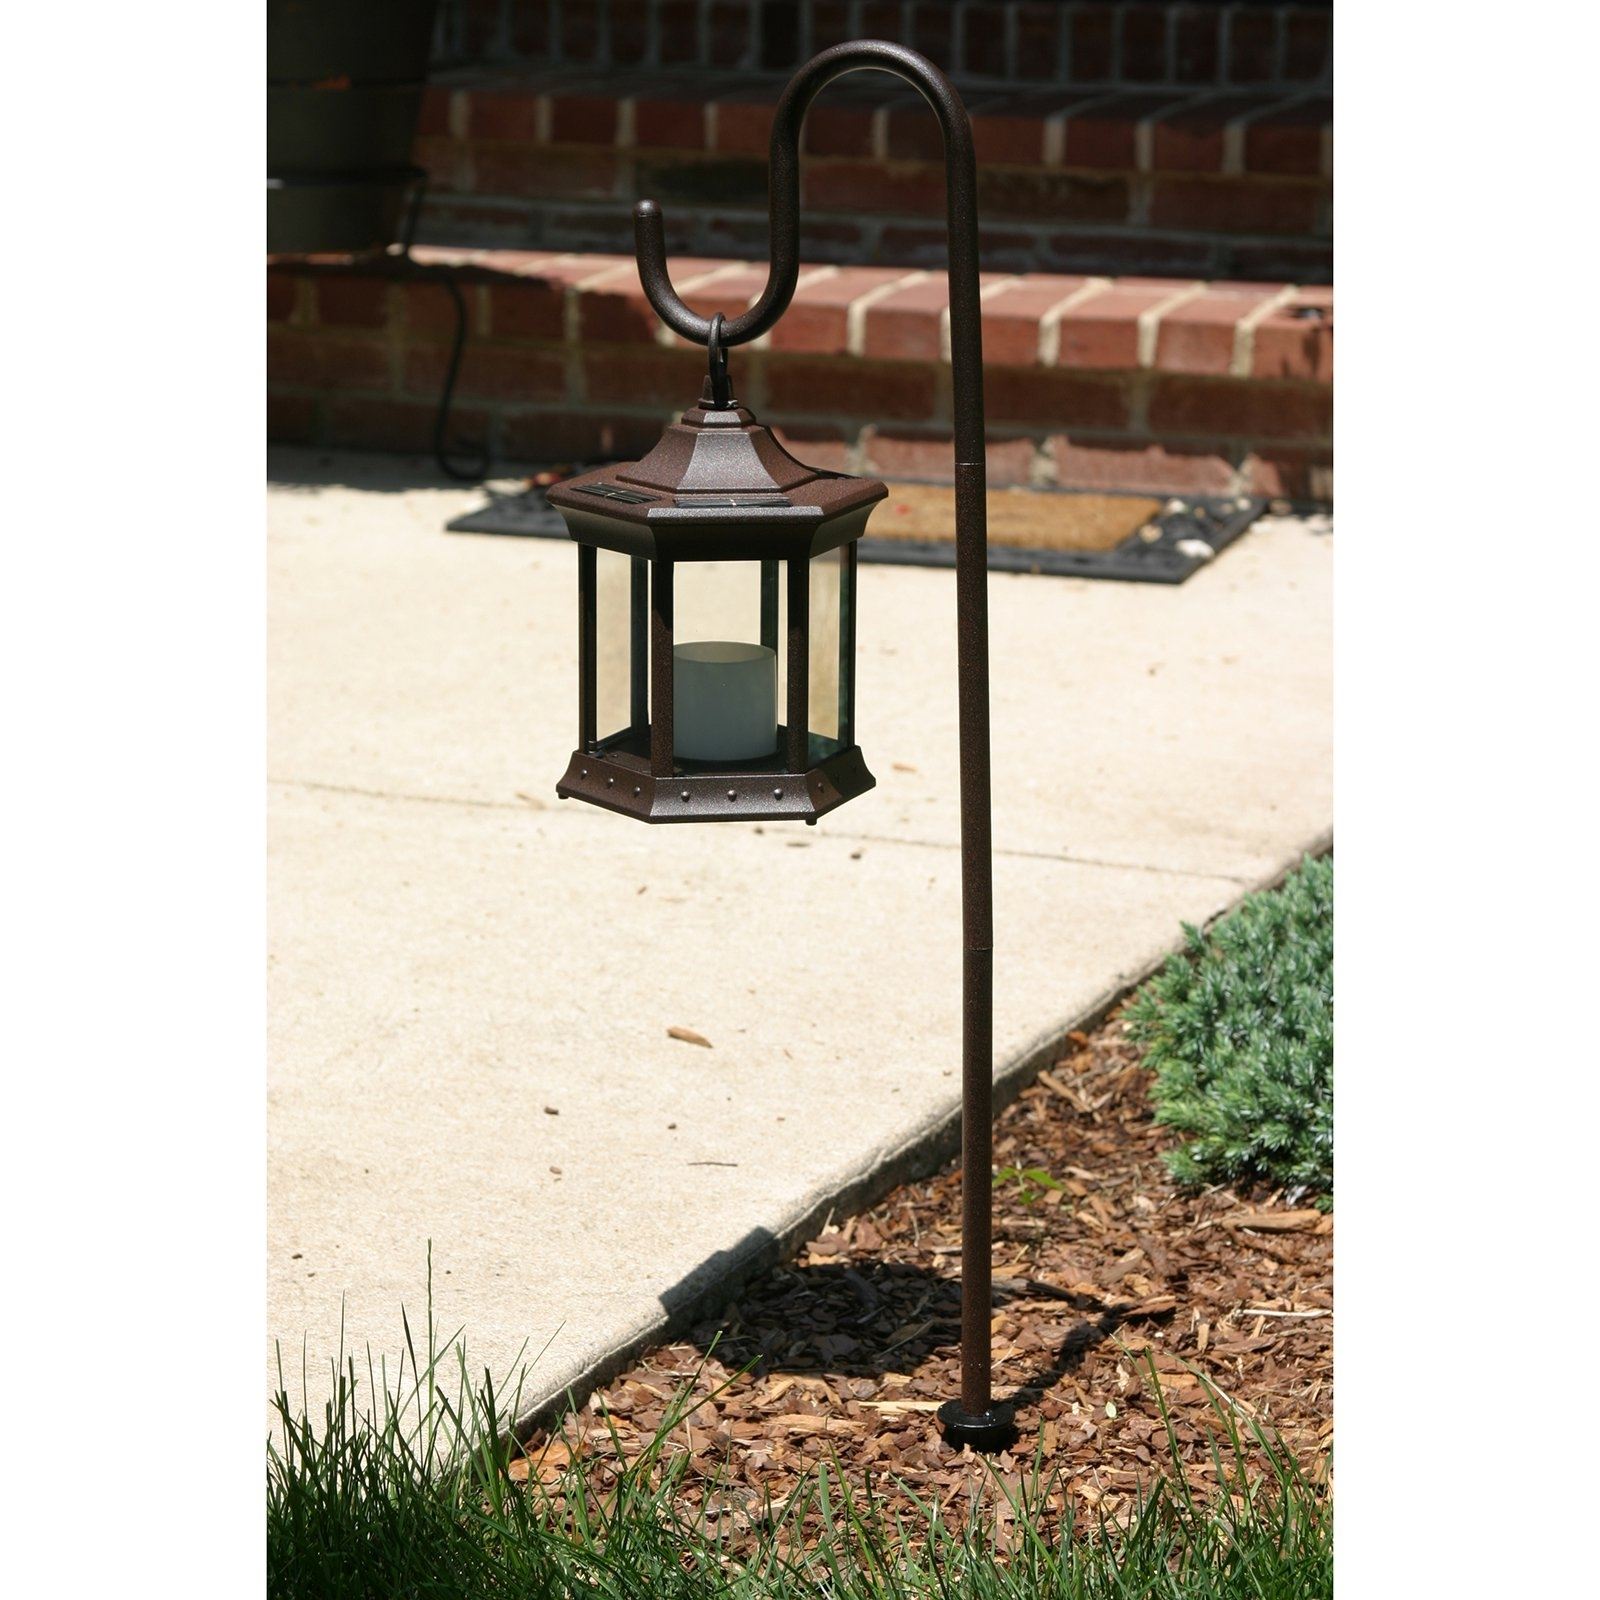 Solar Lantern With Shepherd's Hook - Walmart with regard to Outdoor Lanterns on Stands (Image 19 of 20)